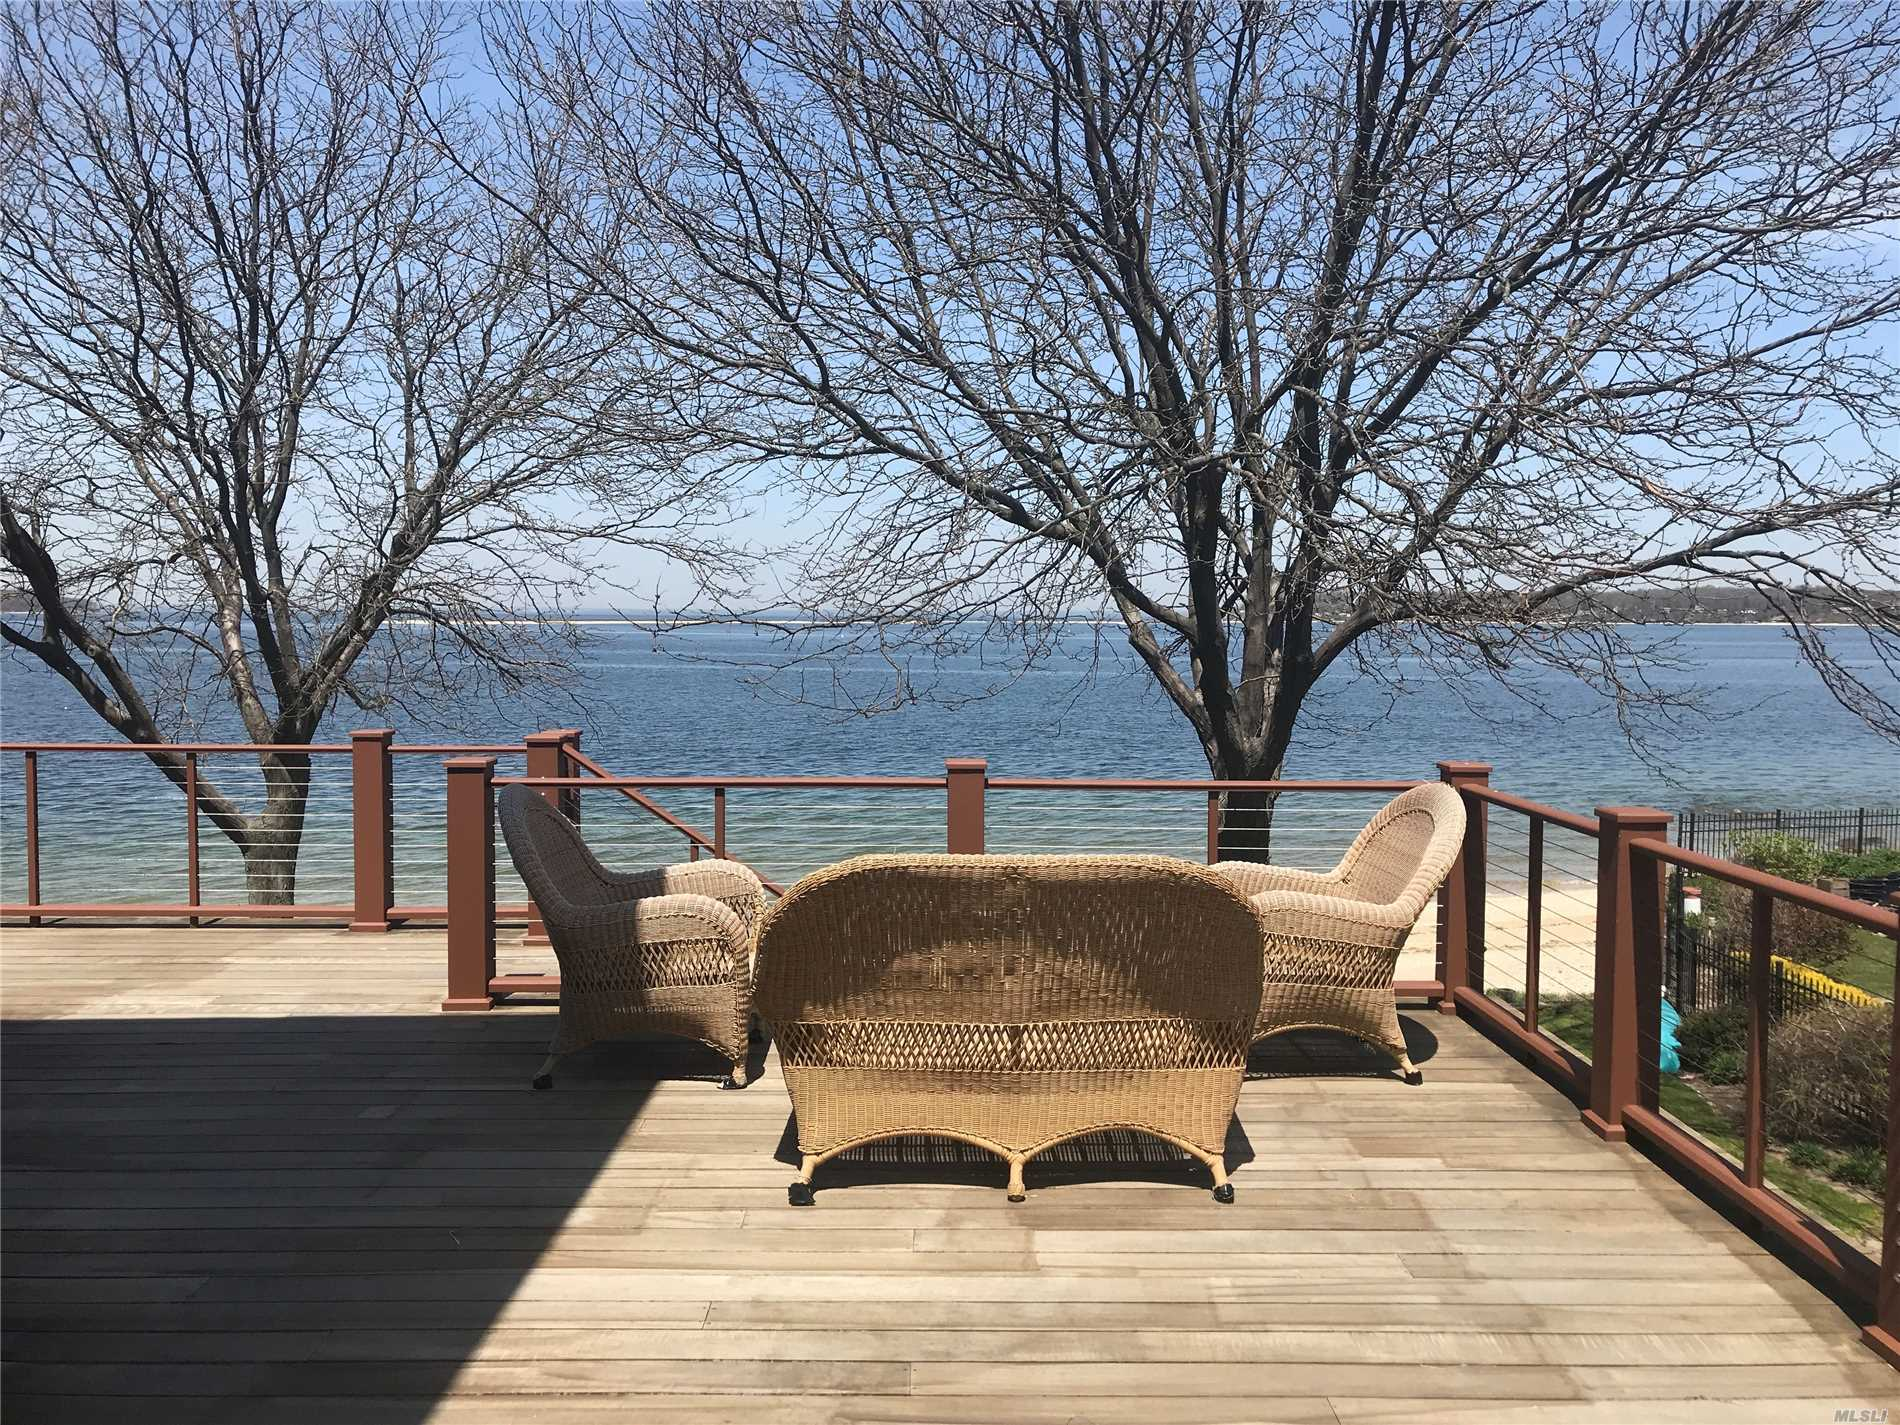 Location! Location!! Sophisticated Beach House. Spectacular 300 Feet Of Waterfront. In-Ground Pool And Cabana, Hot Tub. Dead-Mans Bulkhead. Wrap-Around Deck, Floor To Ceiling Windows. Panoramic Water Views Of Lloyd Neck, Asharoken And Connecticut!